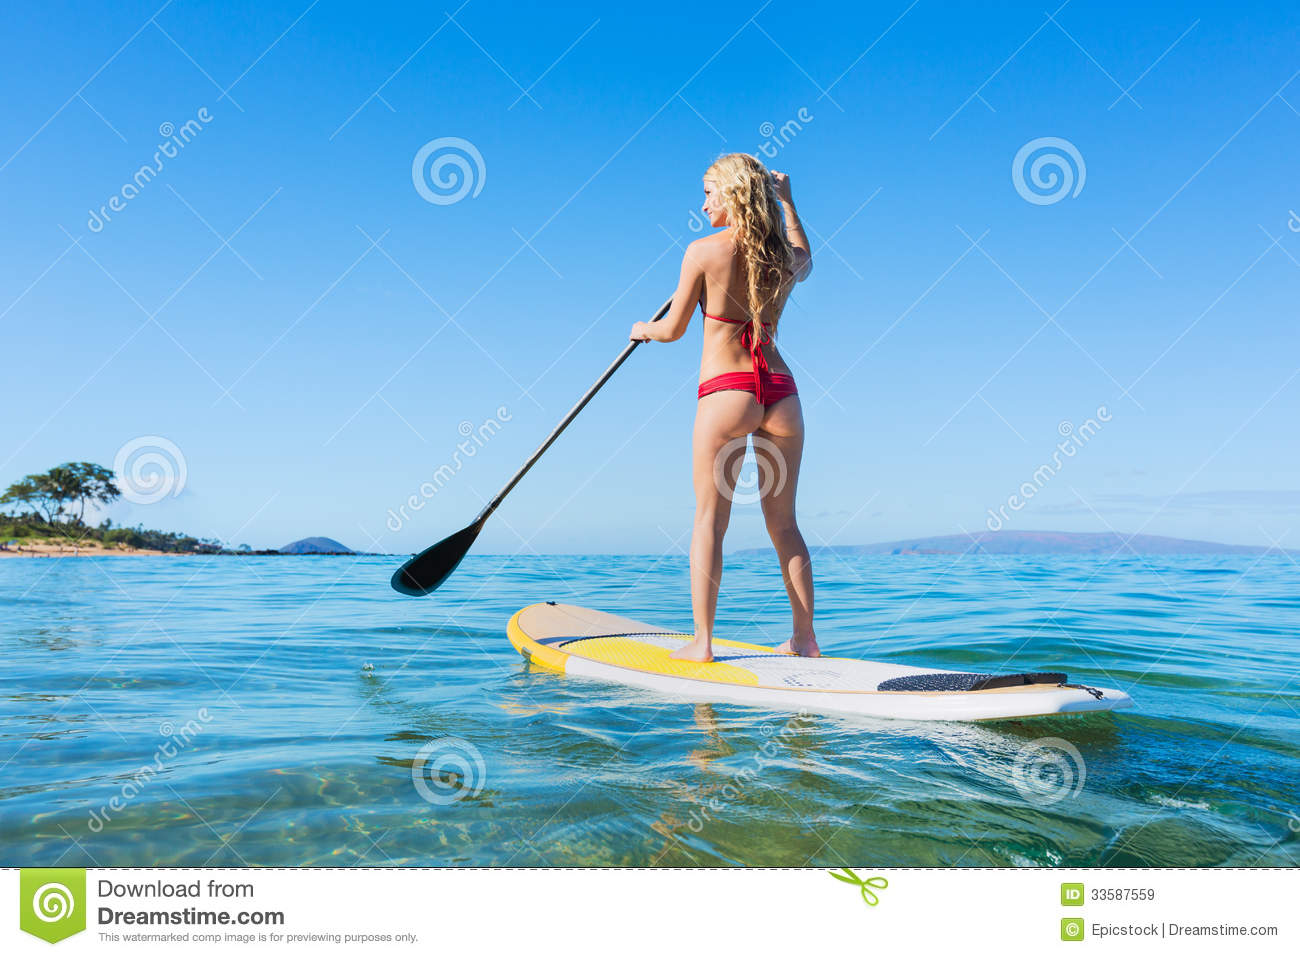 7731fde3ba6 Woman On Stand Up Paddle Board Stock Image - Image of surfboard ...